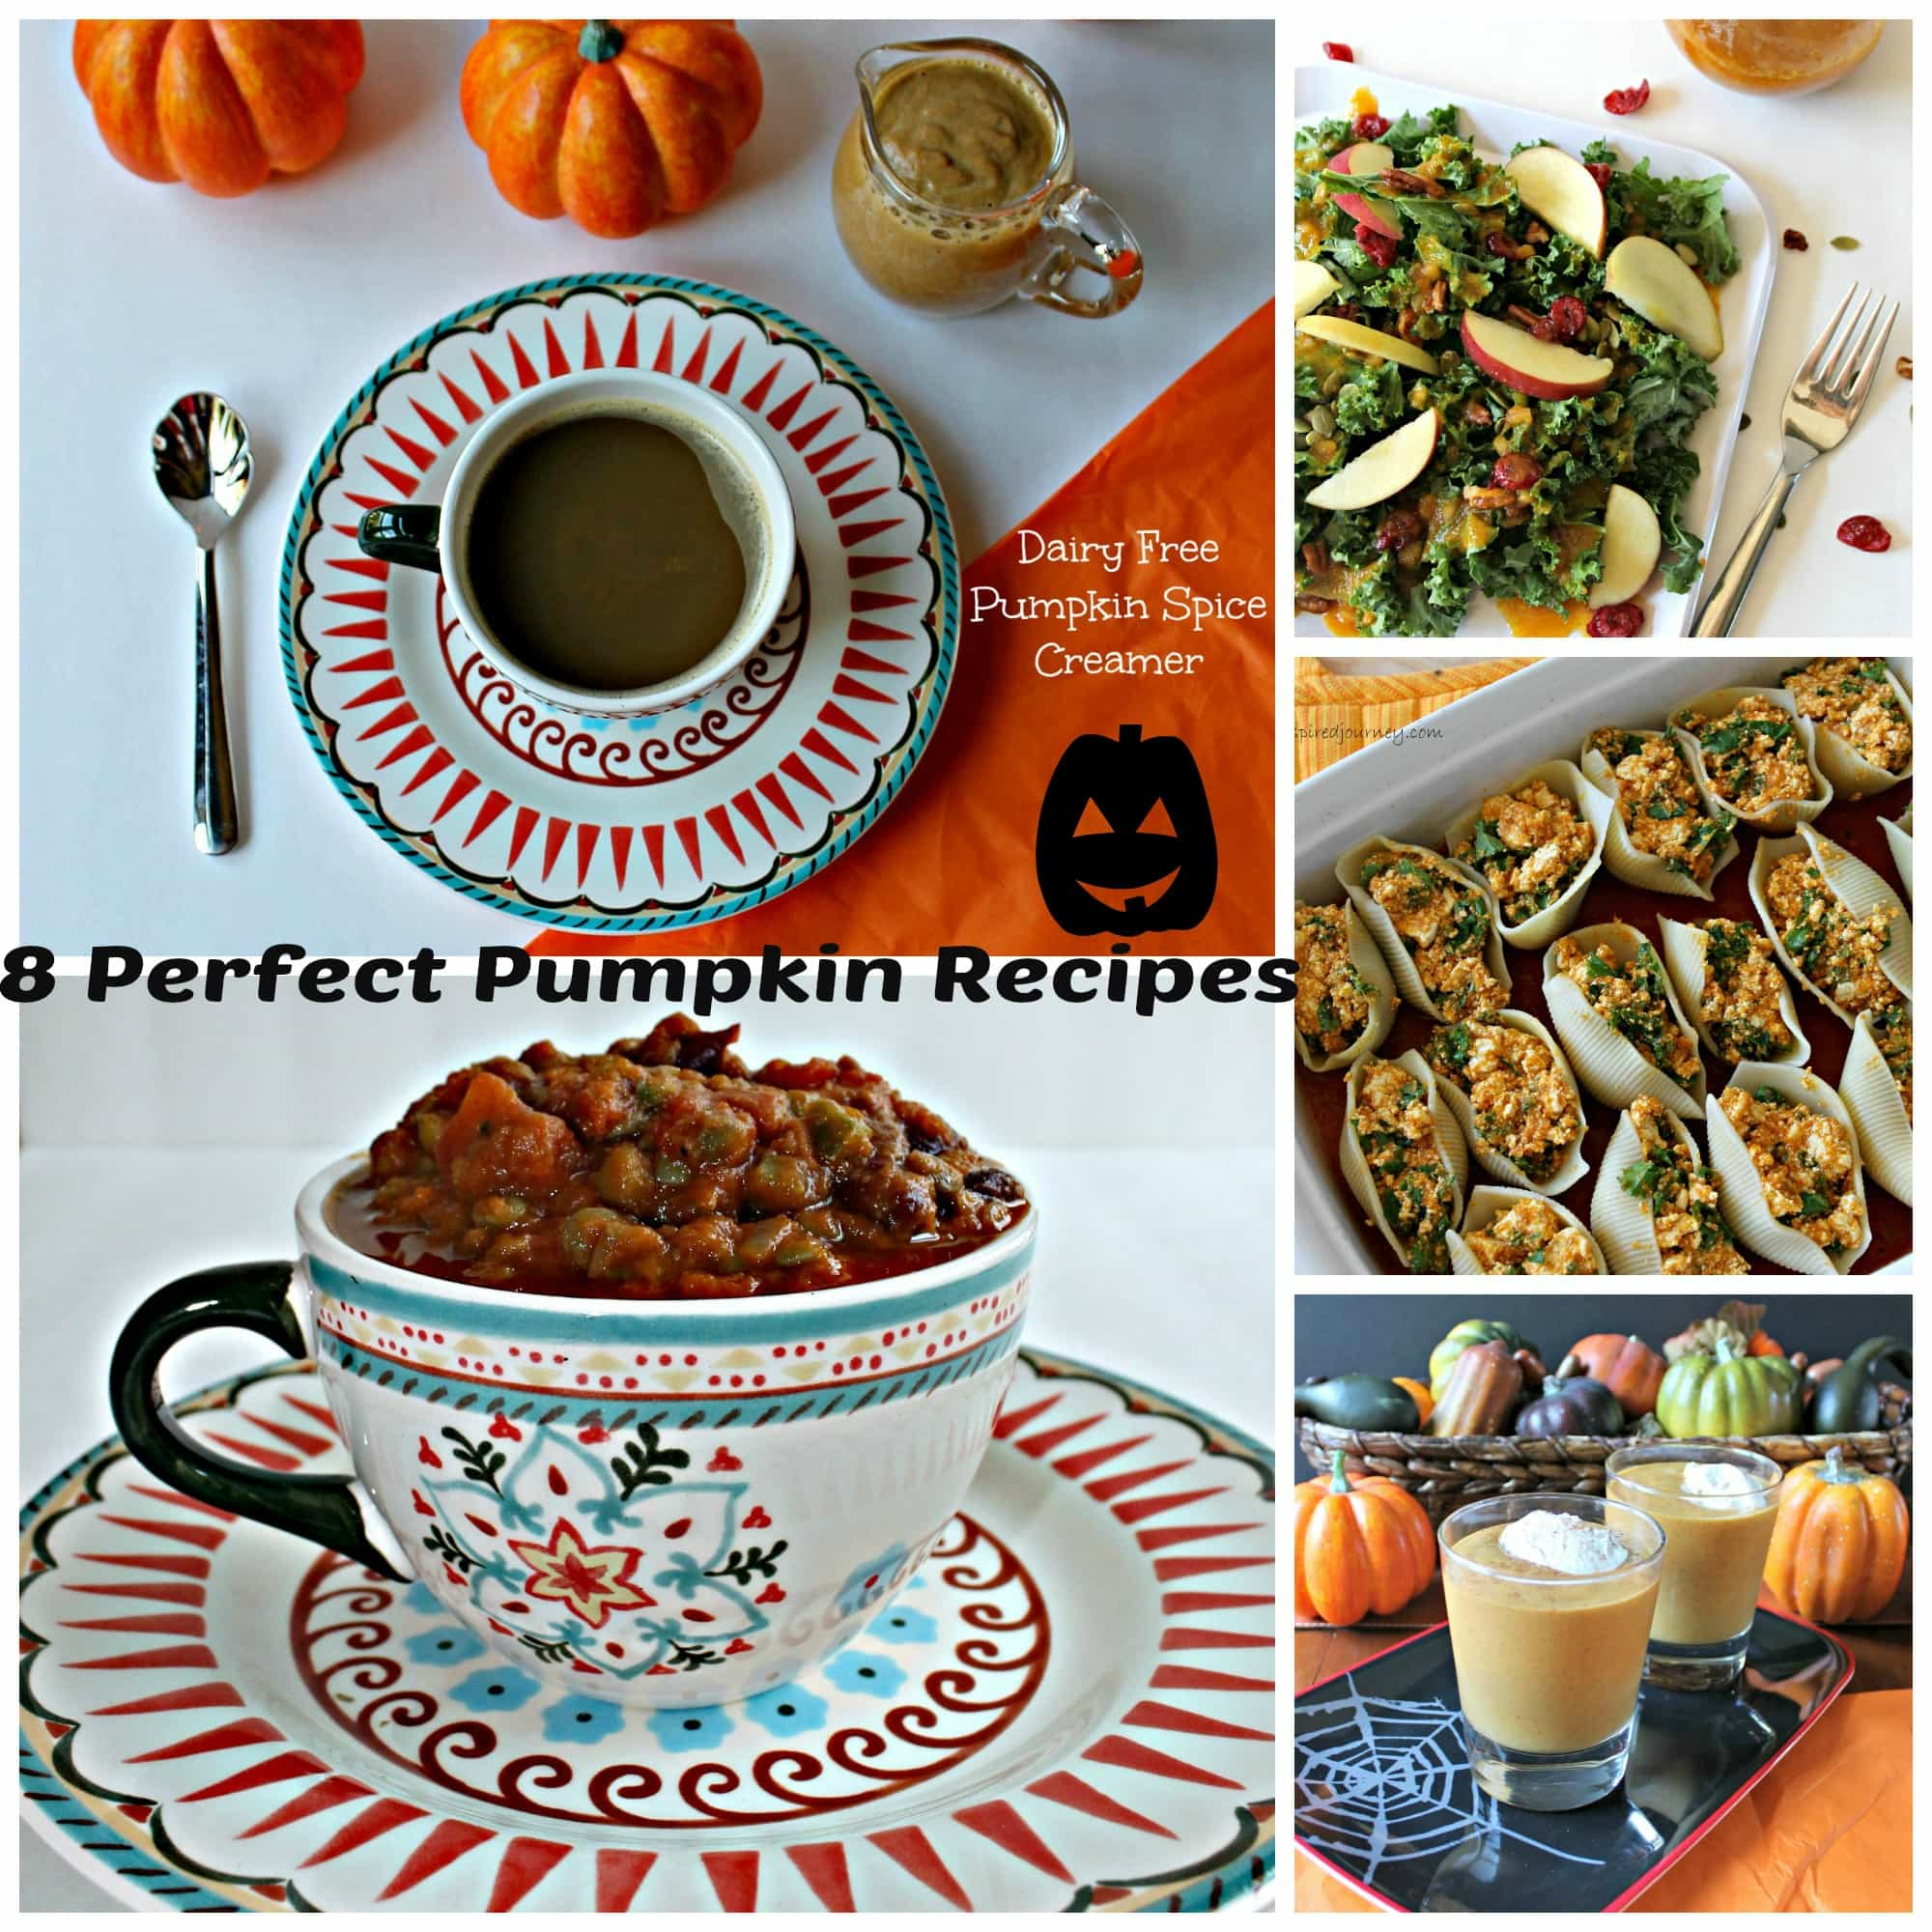 8 Perfect Pumpkin Recipes to Please your Palate